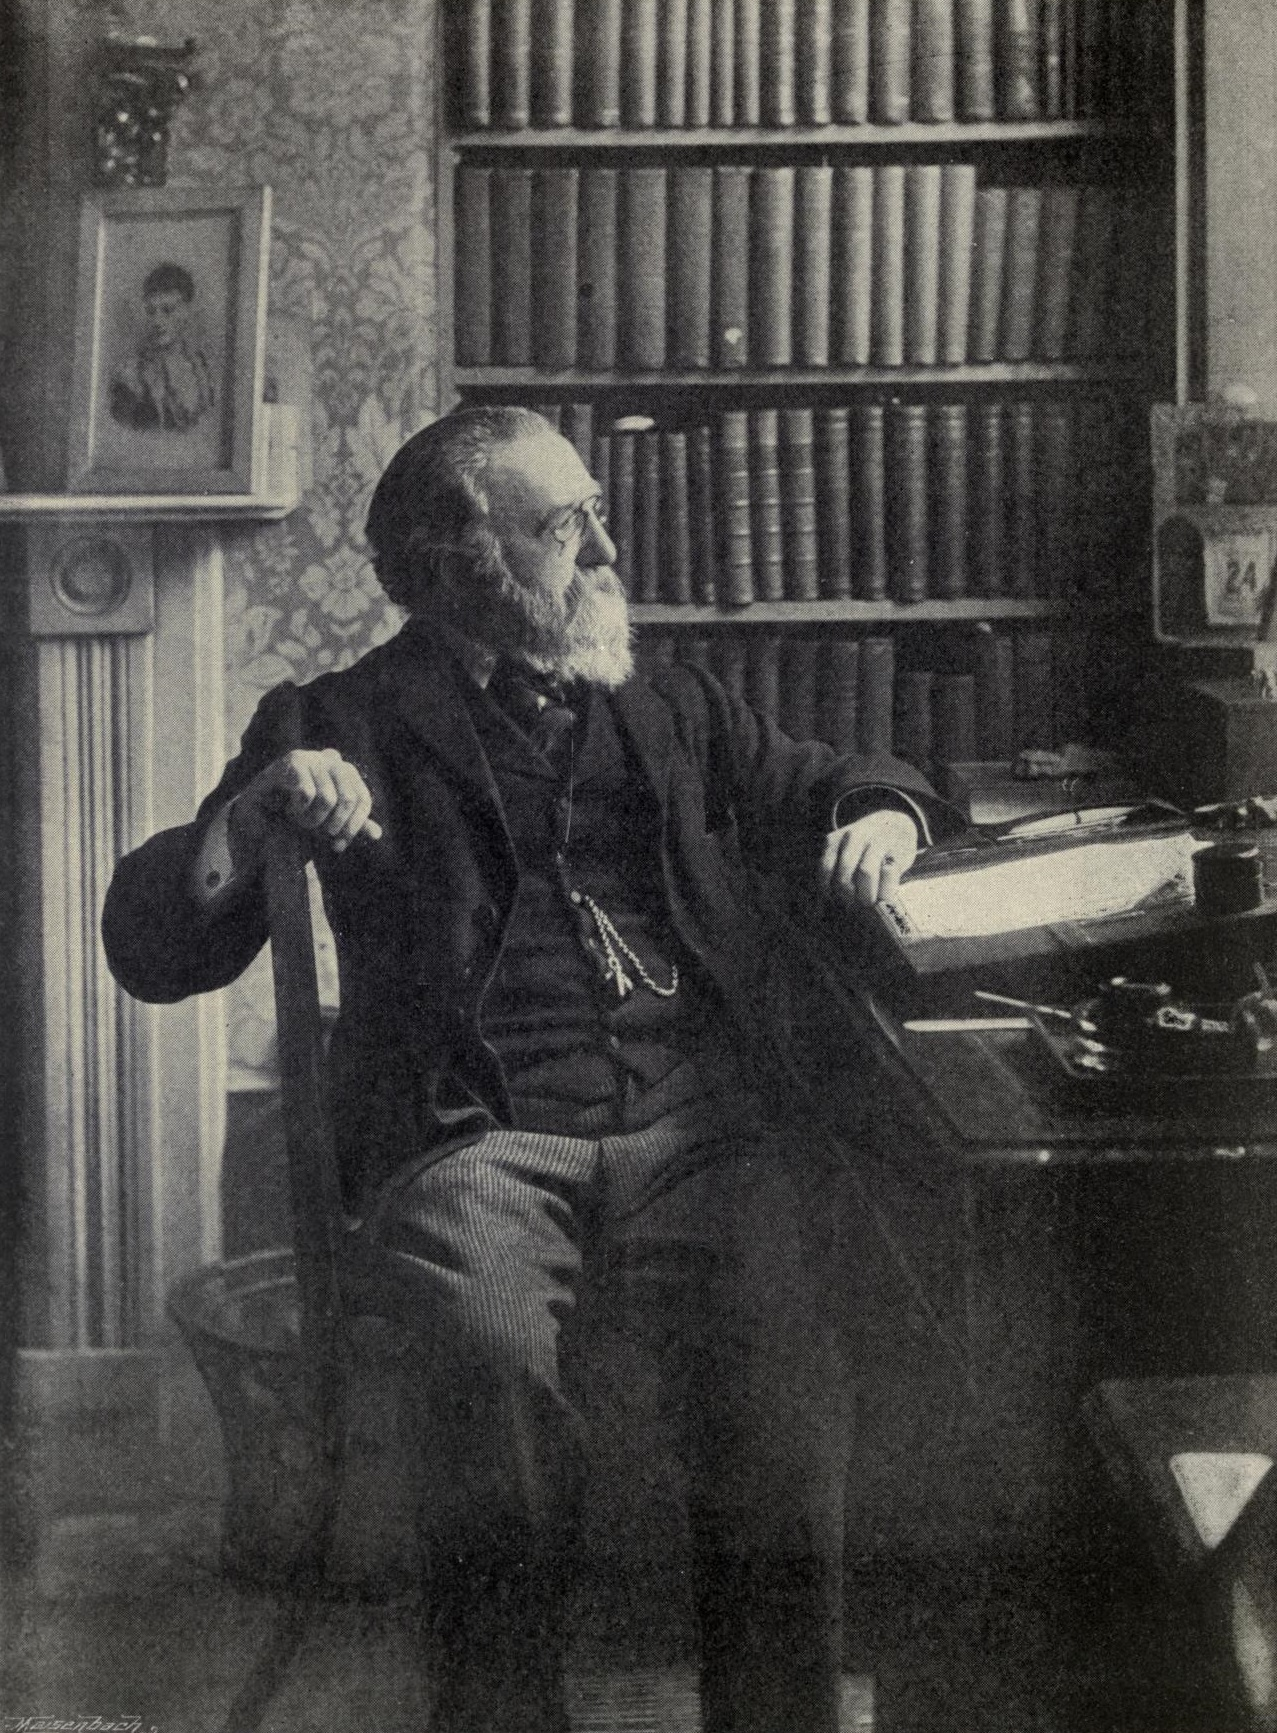 Justin McCarthy (1830-1912), Irish nationalist and Liberal historian, novelist and politician. His 'Camiola' had just been published [https://upload.wikimedia.org]